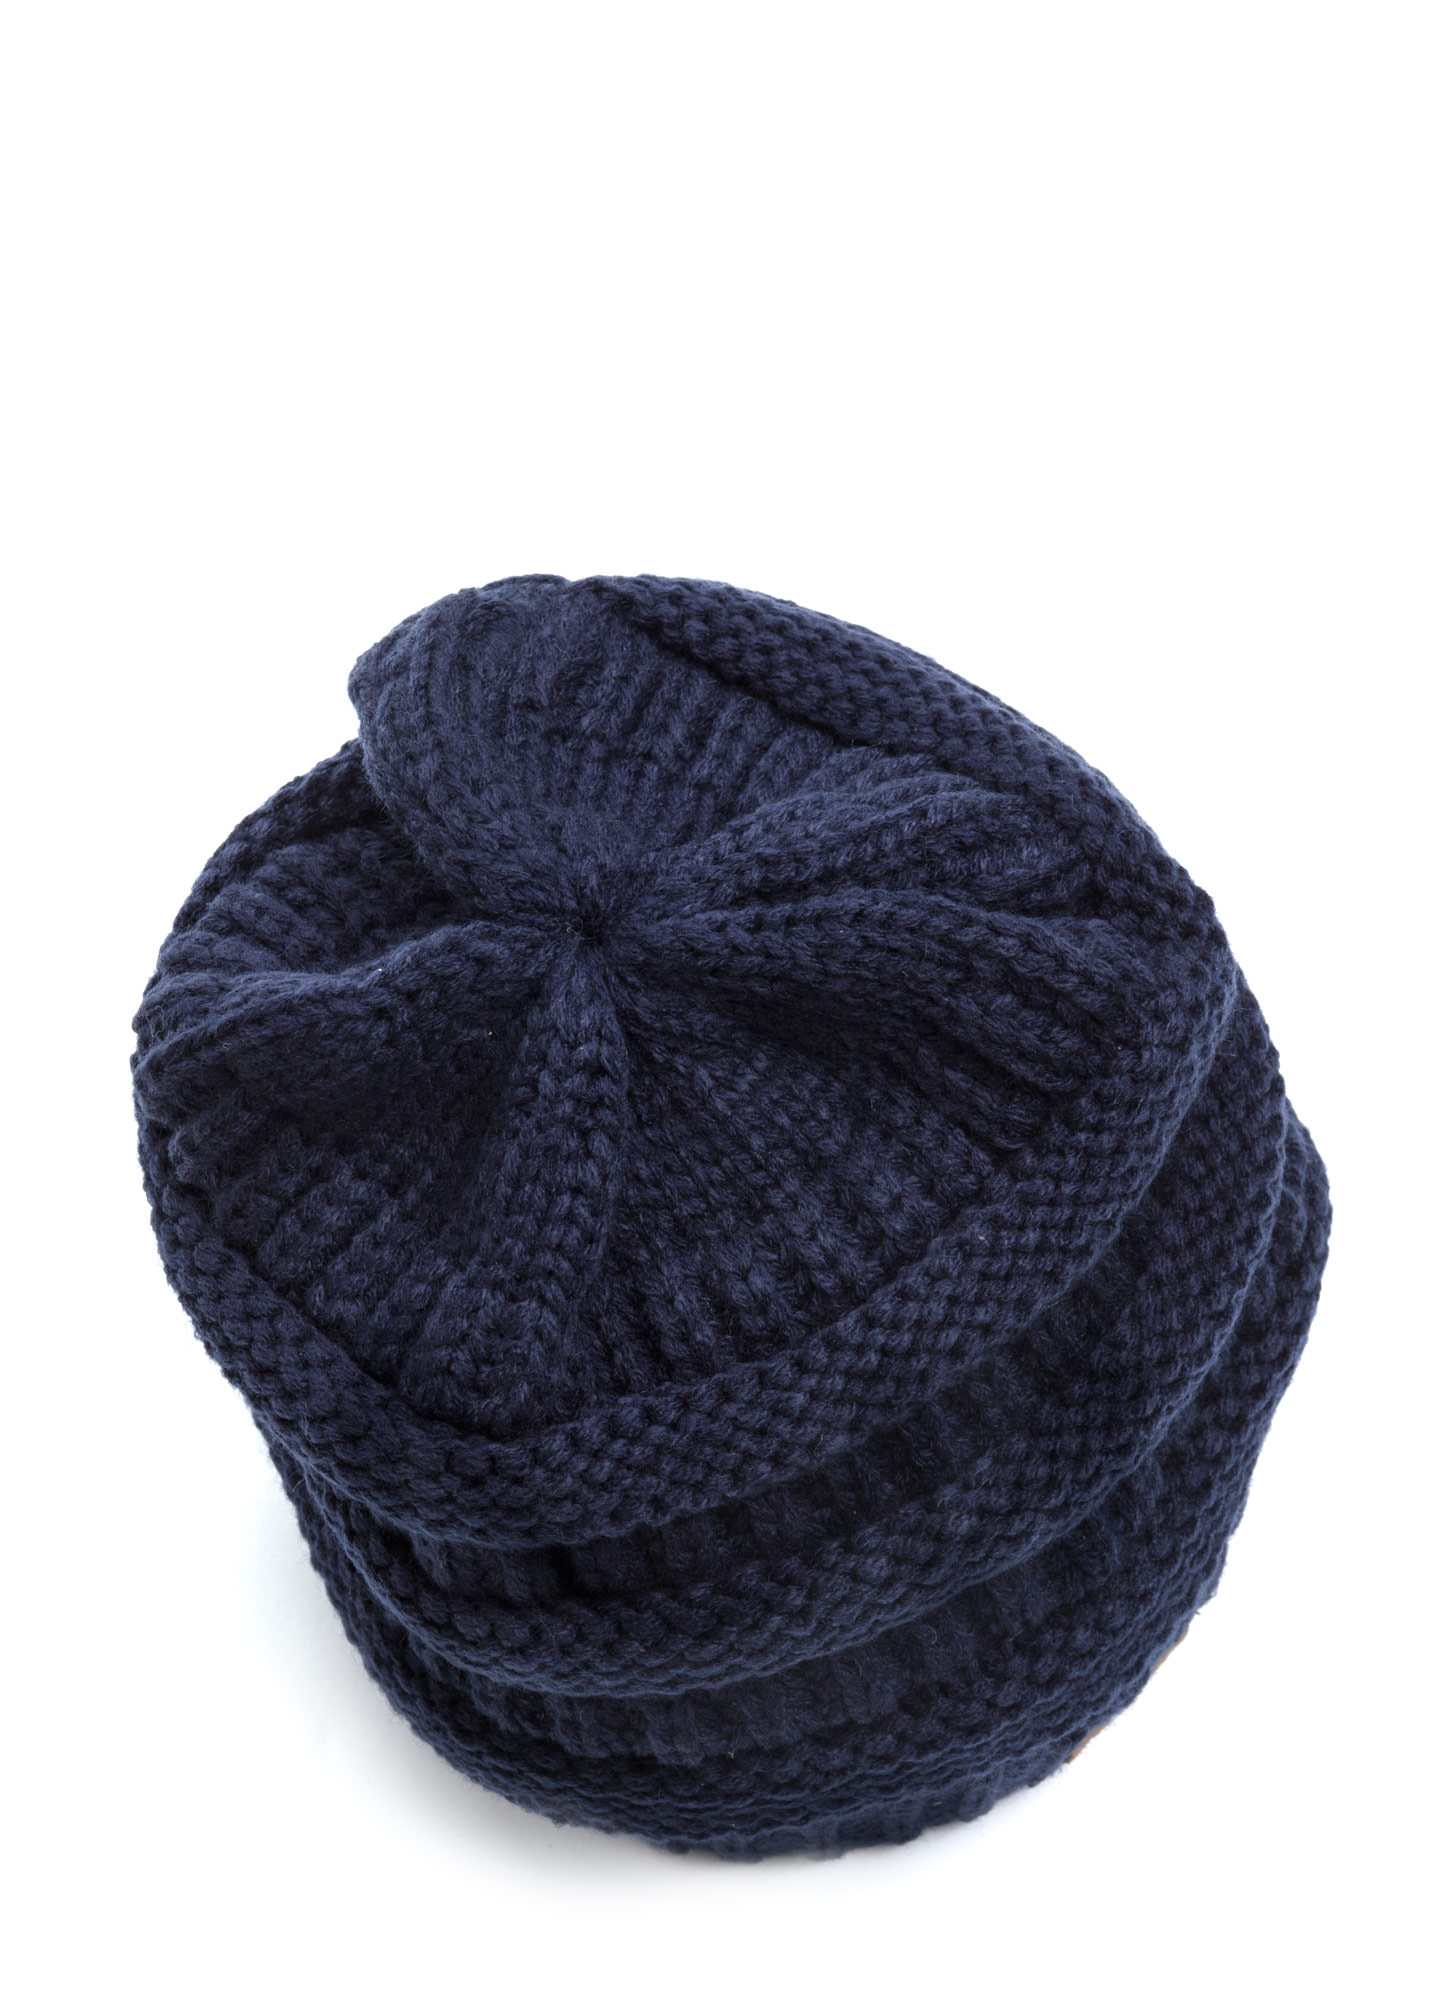 Cozy CC Cable Knit Beanie NAVY (Final Sale)